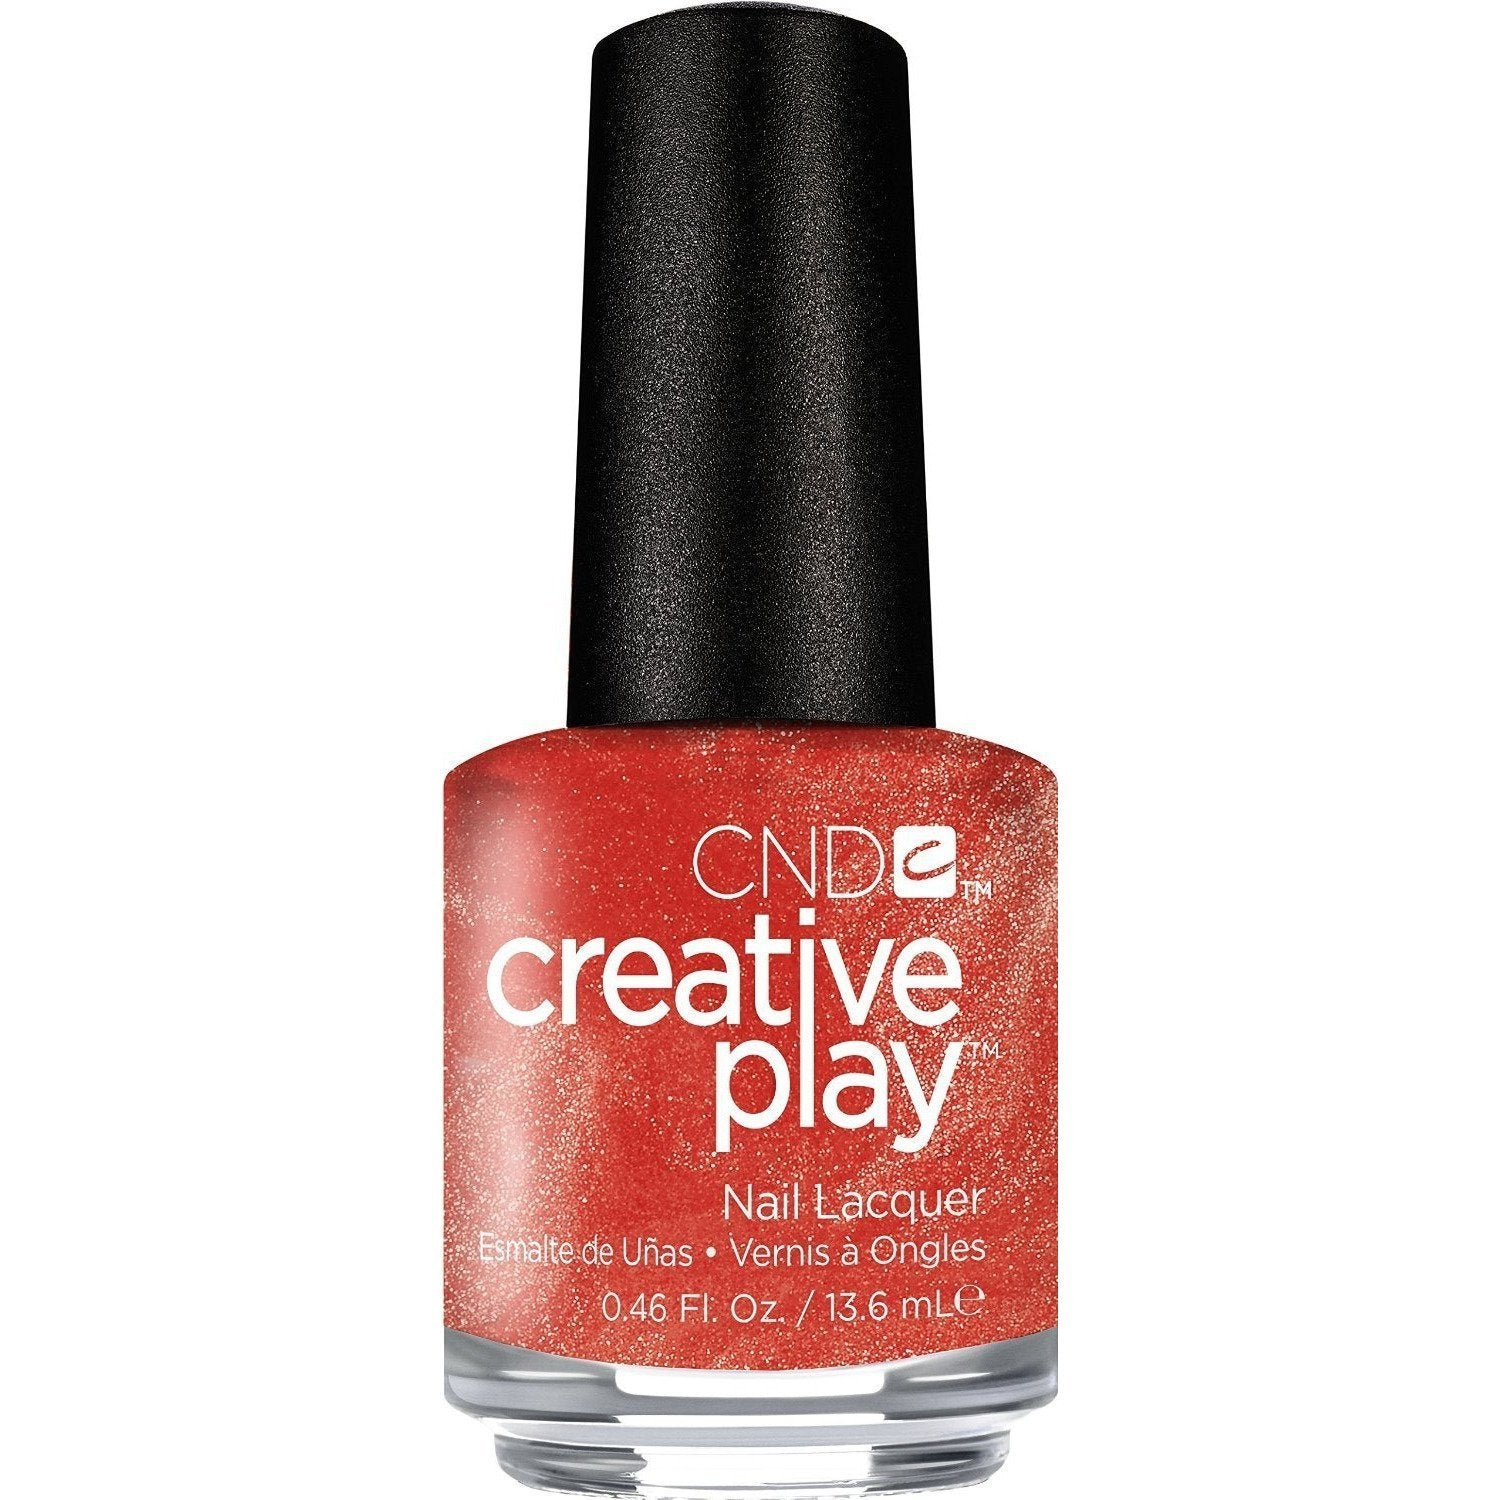 CND Creative Play Nail Polish - See U In Sienna | CND - CM Nails & Beauty Supply